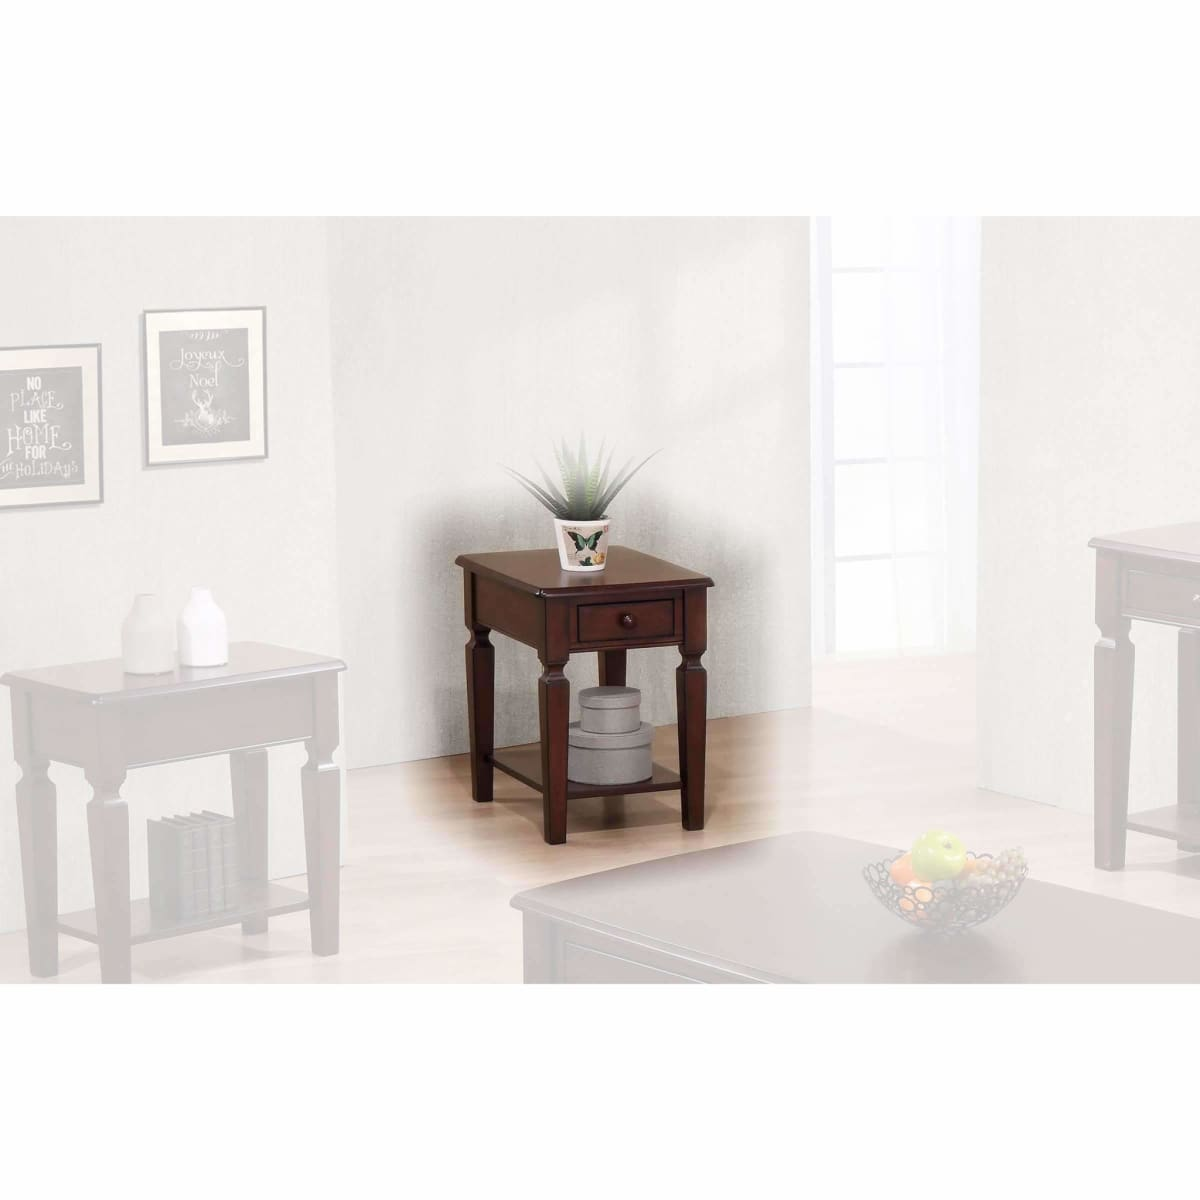 Santa Fe 18 End Table - END TABLE/SIDE TABLE